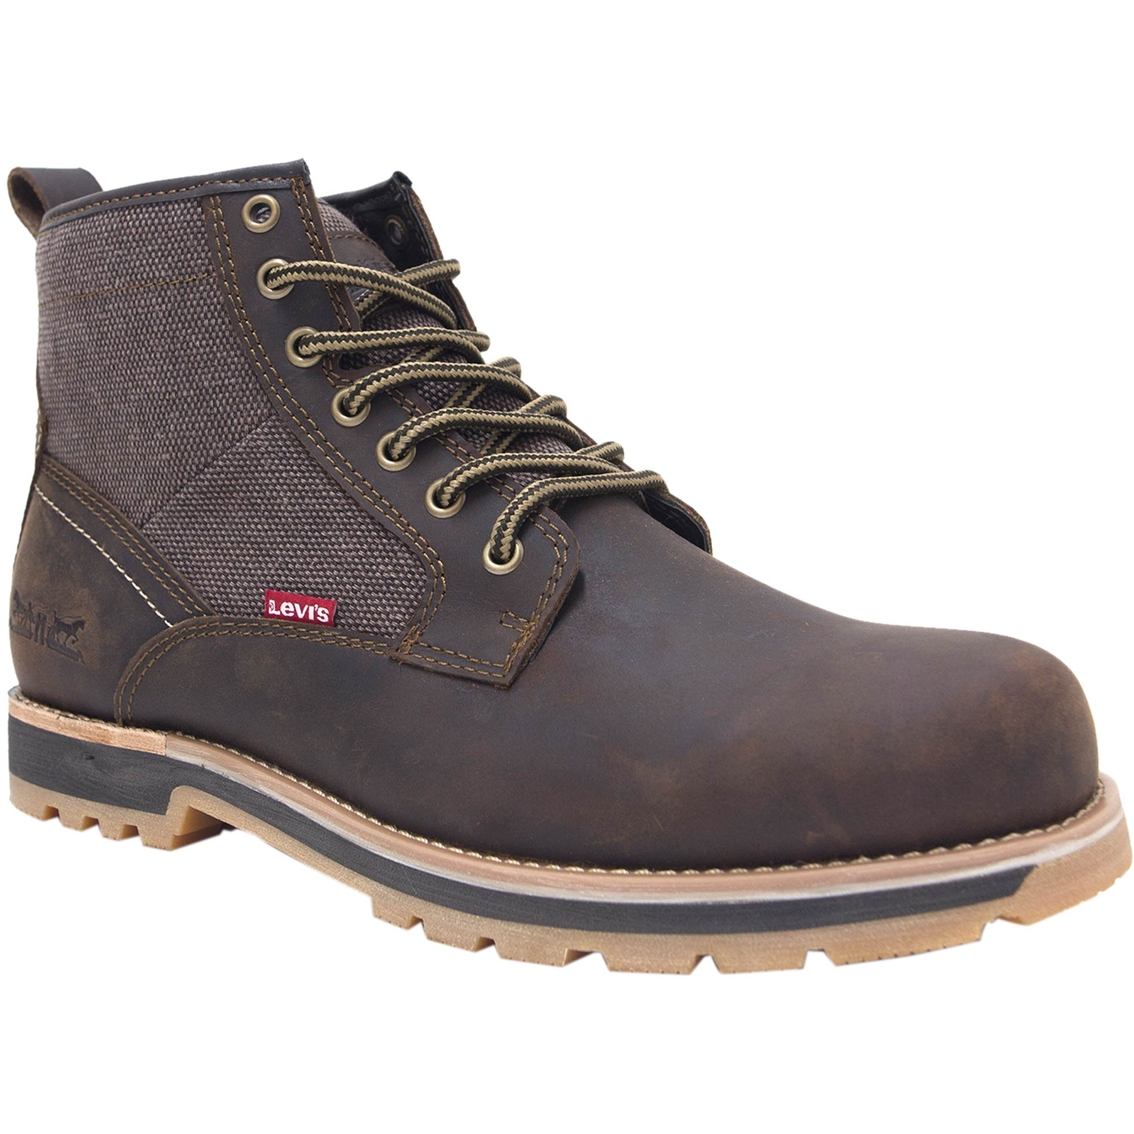 822e201b Levi's Logan Crazy Horse Leather And Hemp Boots | Casual | Shoes ...